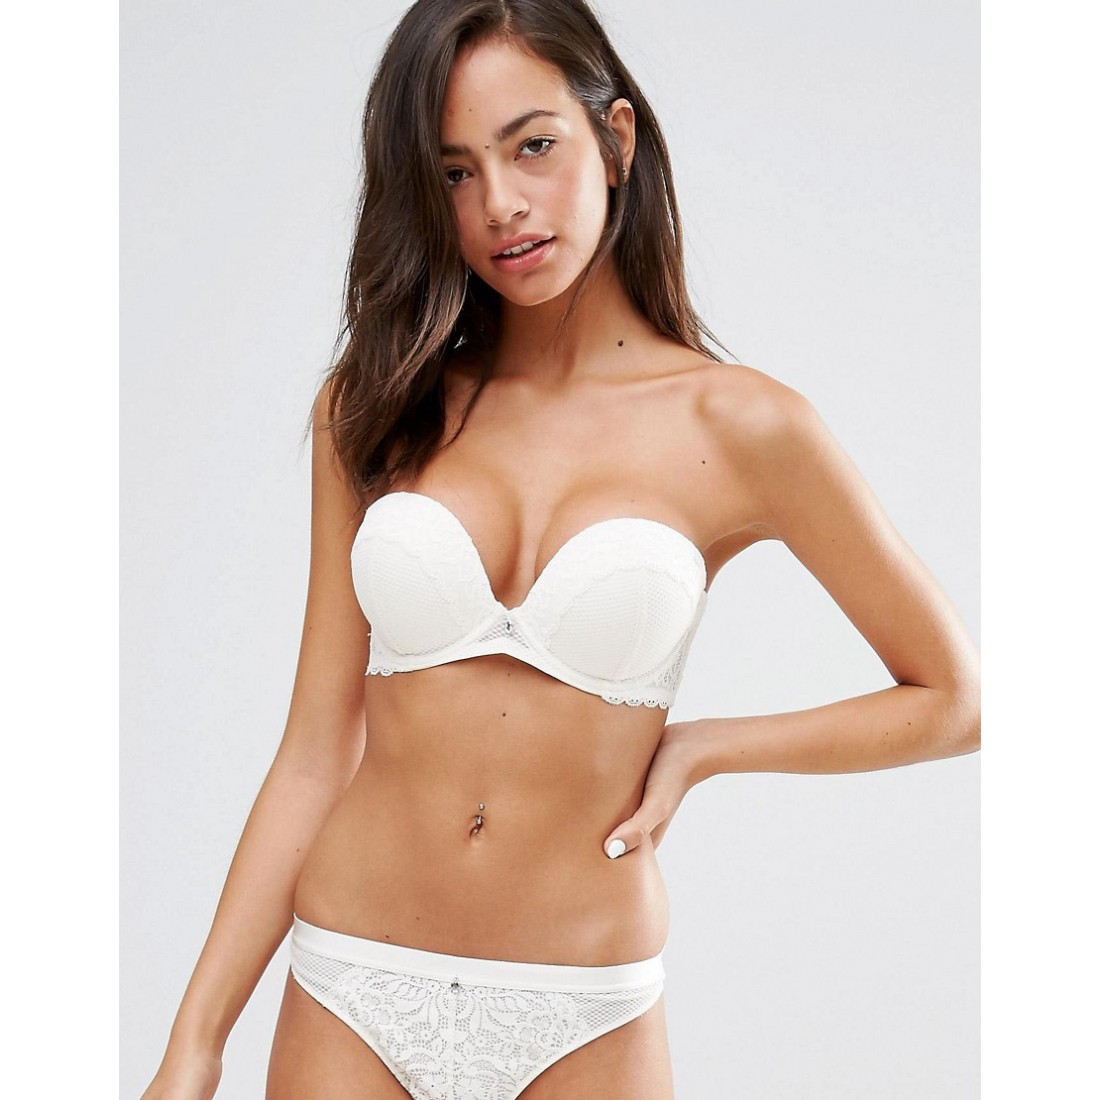 773d3a3e1b8e7 New Look Strapless Lace Push Up Bra AS918967